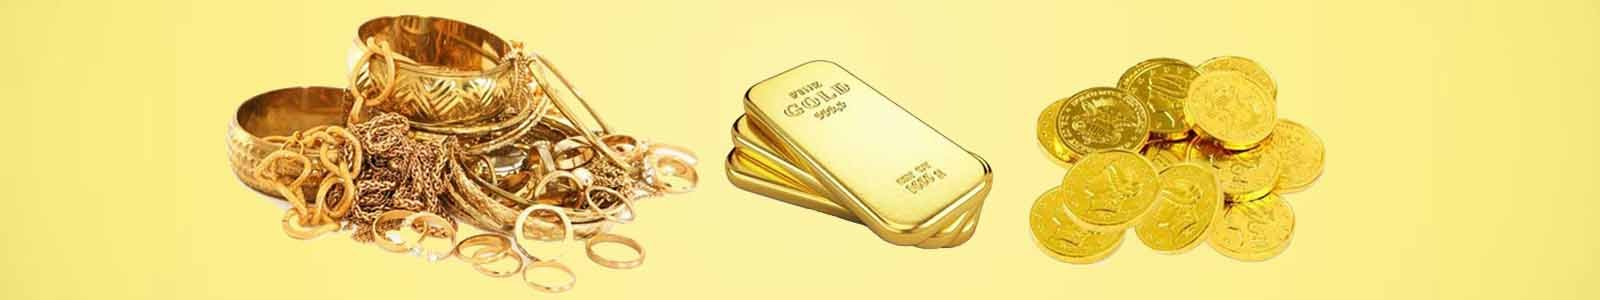 Today Gold Rate in Dubai Gold Price in UAE Mint Jewels